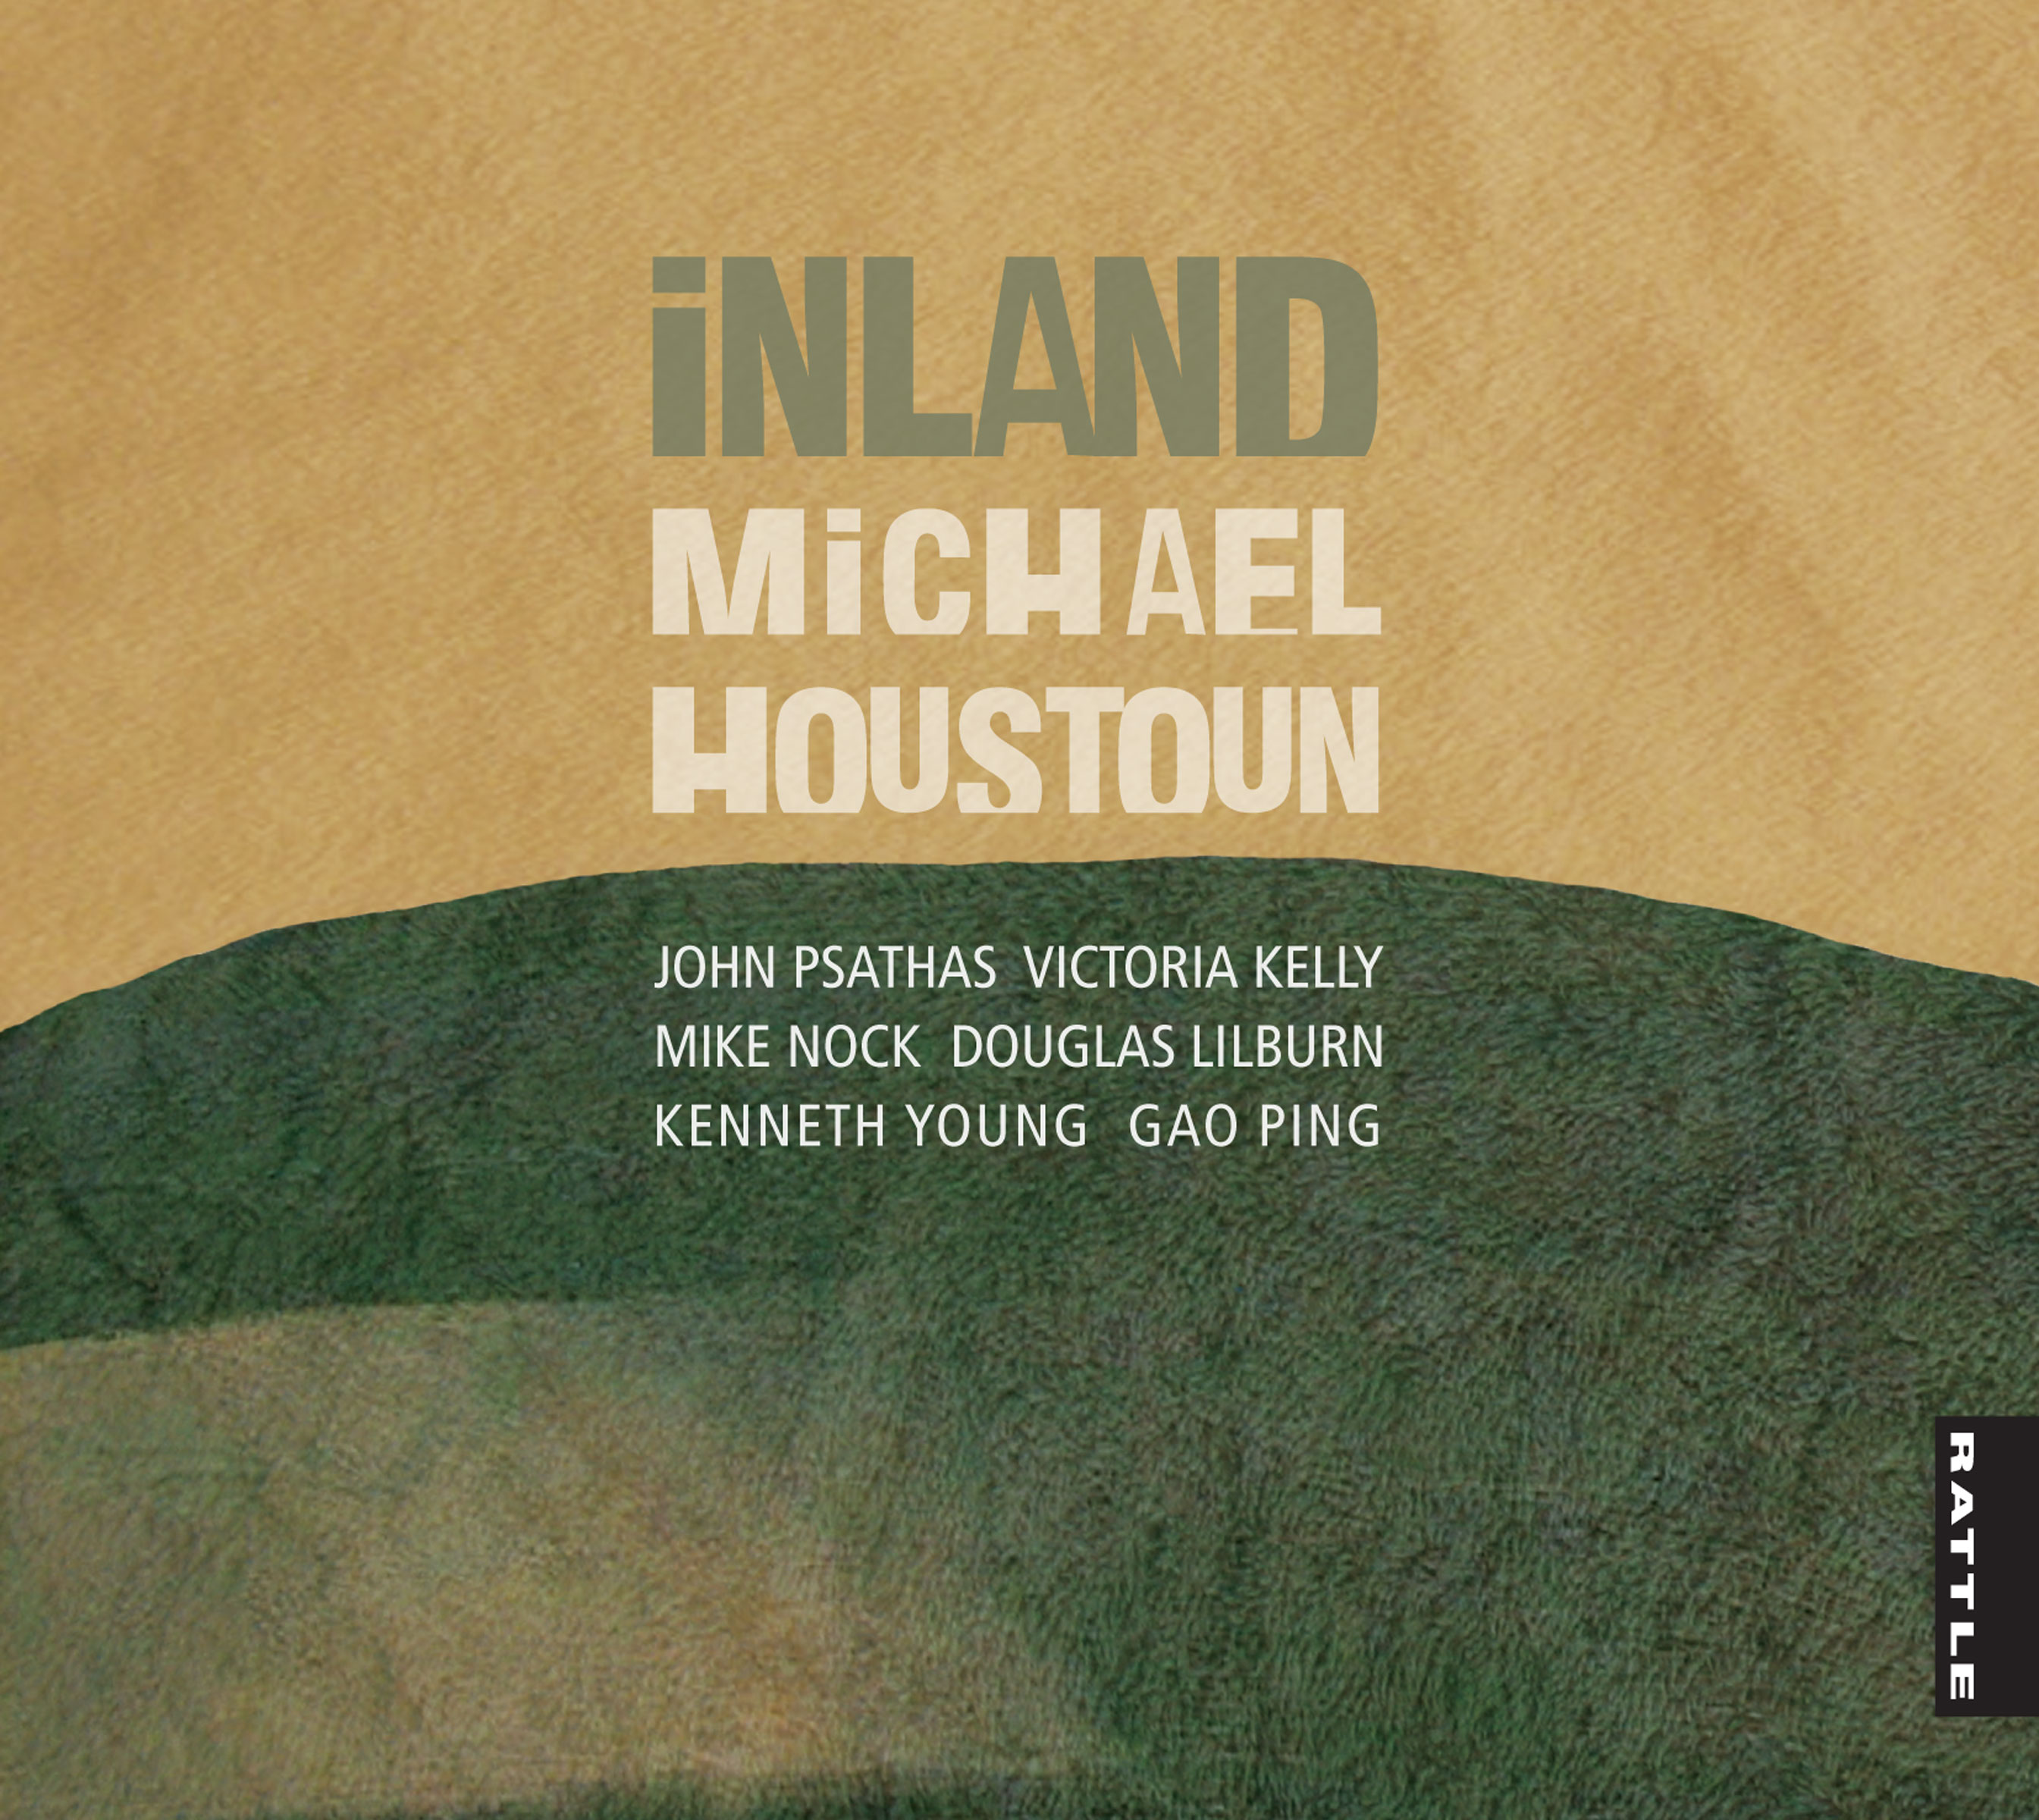 Michael Houstoun | Inland - downloadable MP3 ALBUM